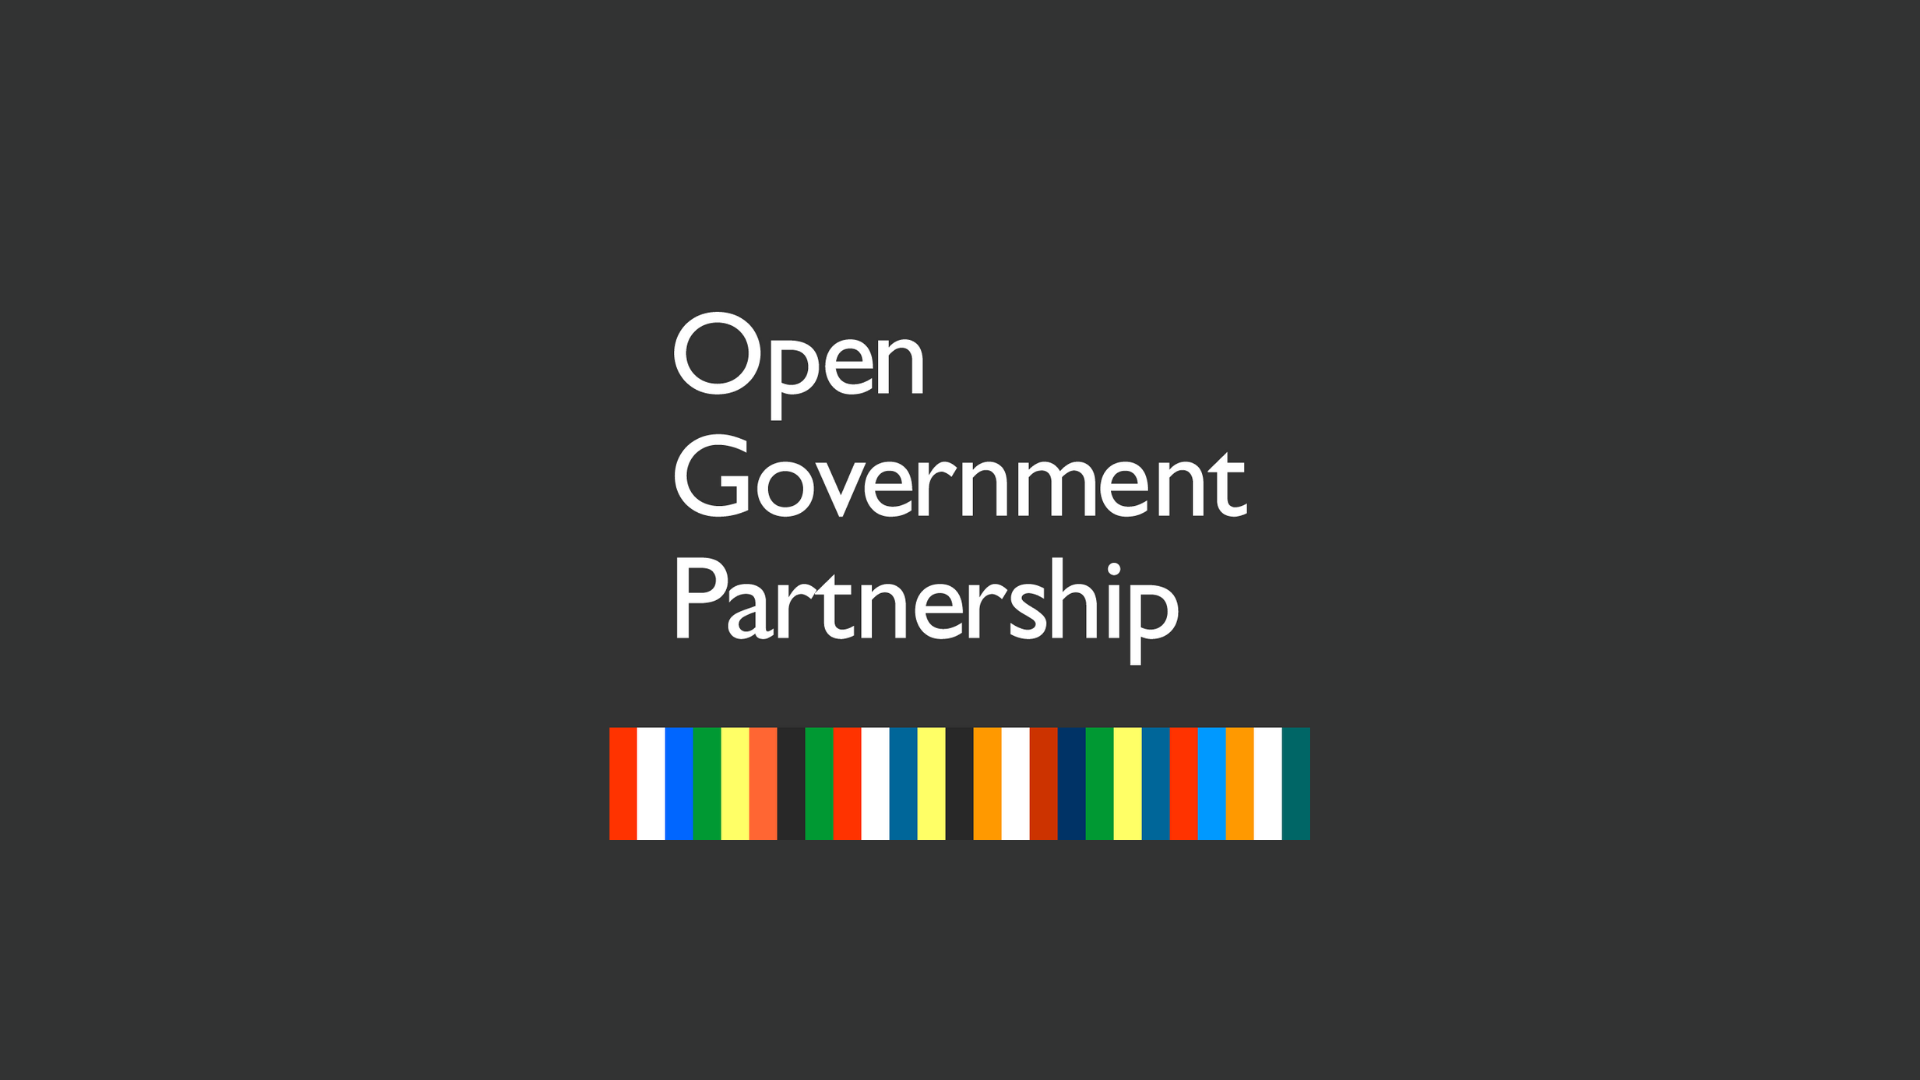 Scotland's Open Government Action Plan 2018-20